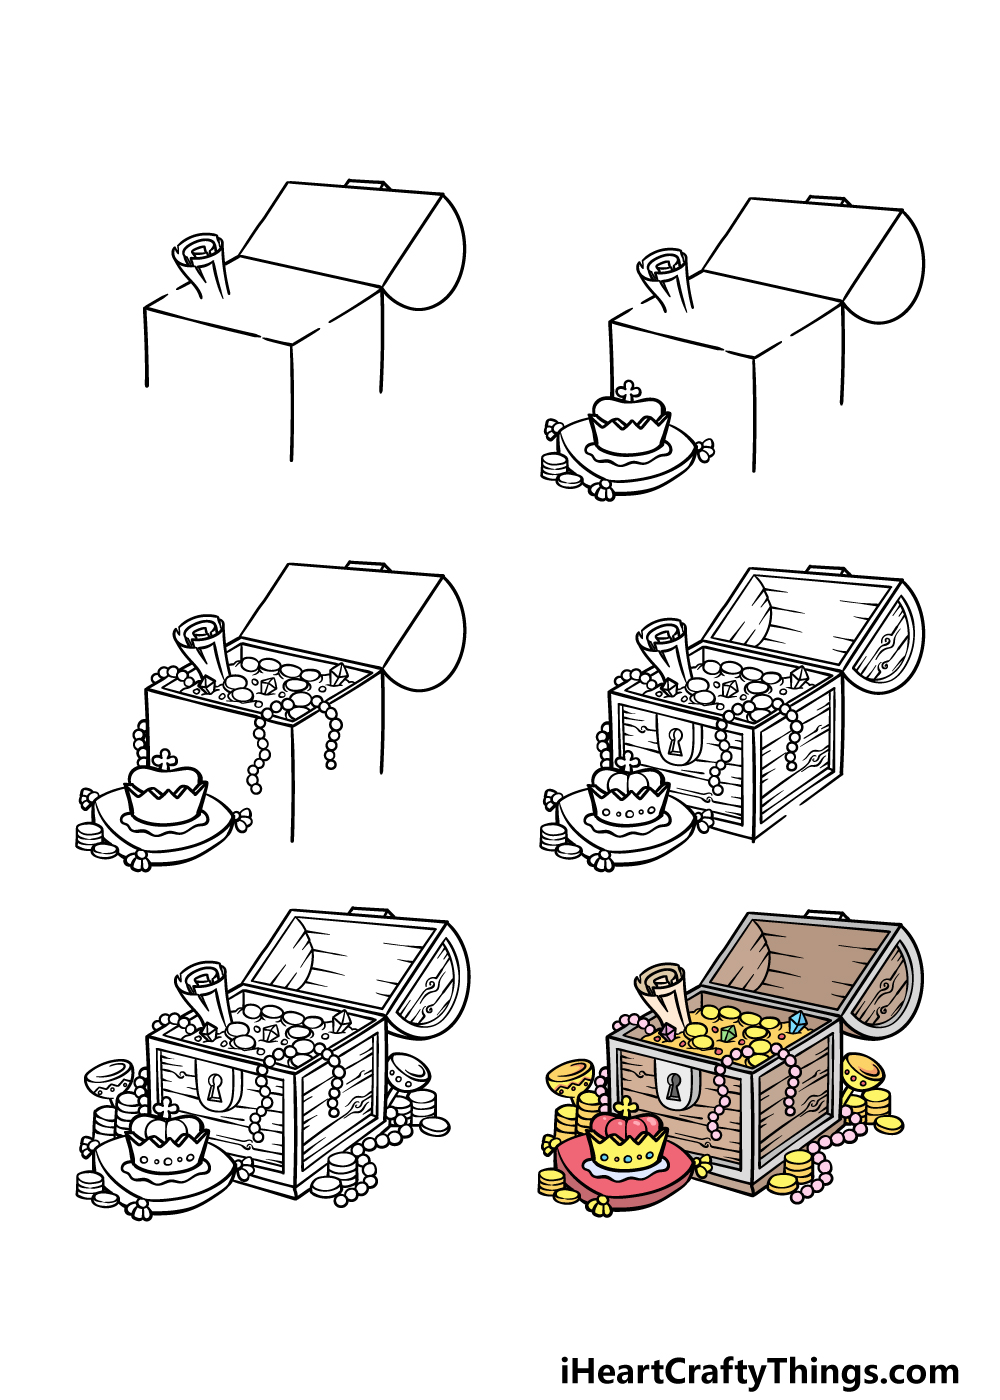 how to draw a treasure chest in 6 steps